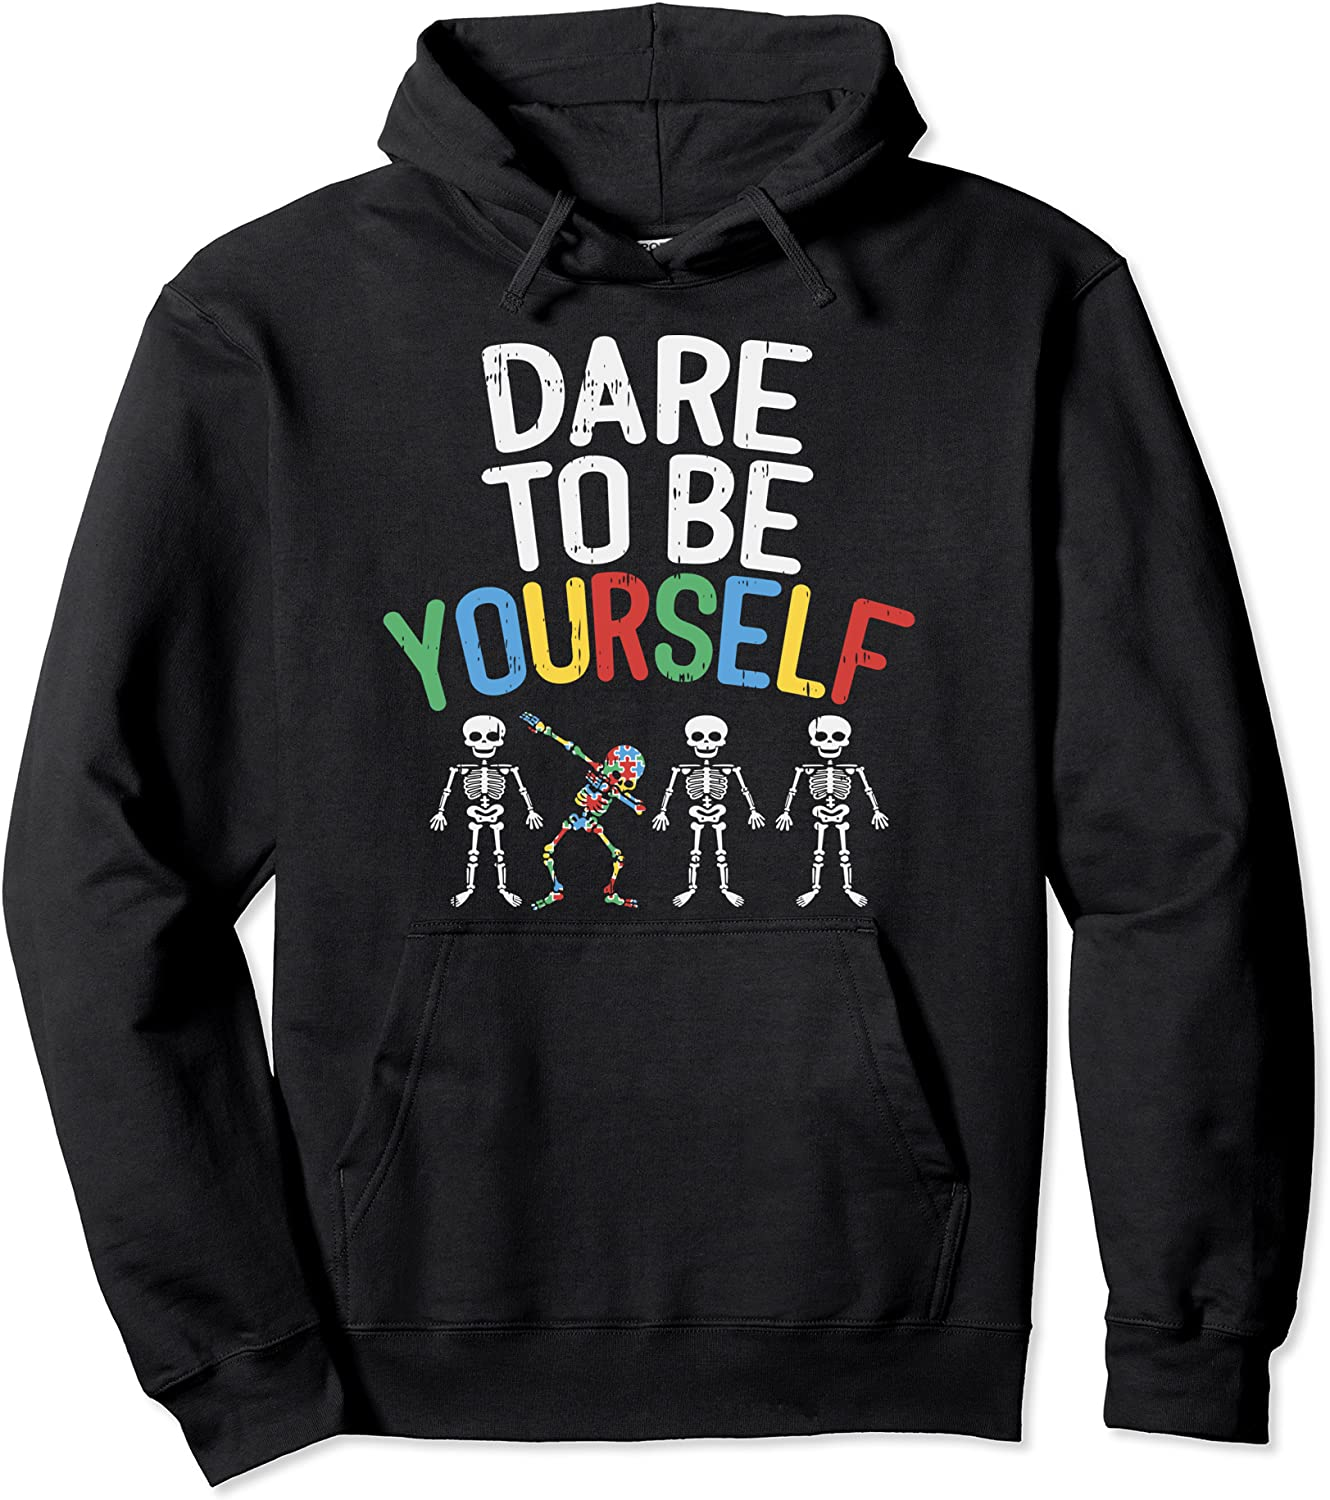 Dare To Be Yourself Hoodie Autism 高級品 Pul Dabbing Skeleton 最新アイテム Awareness